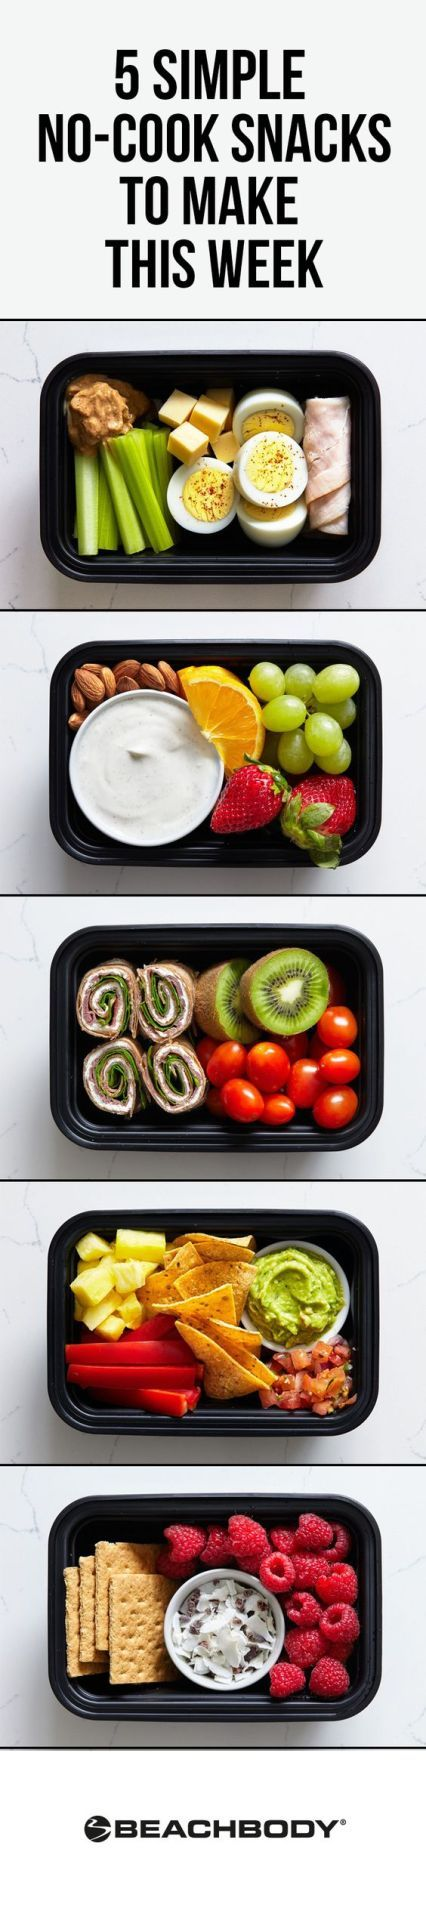 5 Simple No-Cook Snacks to Make this Week